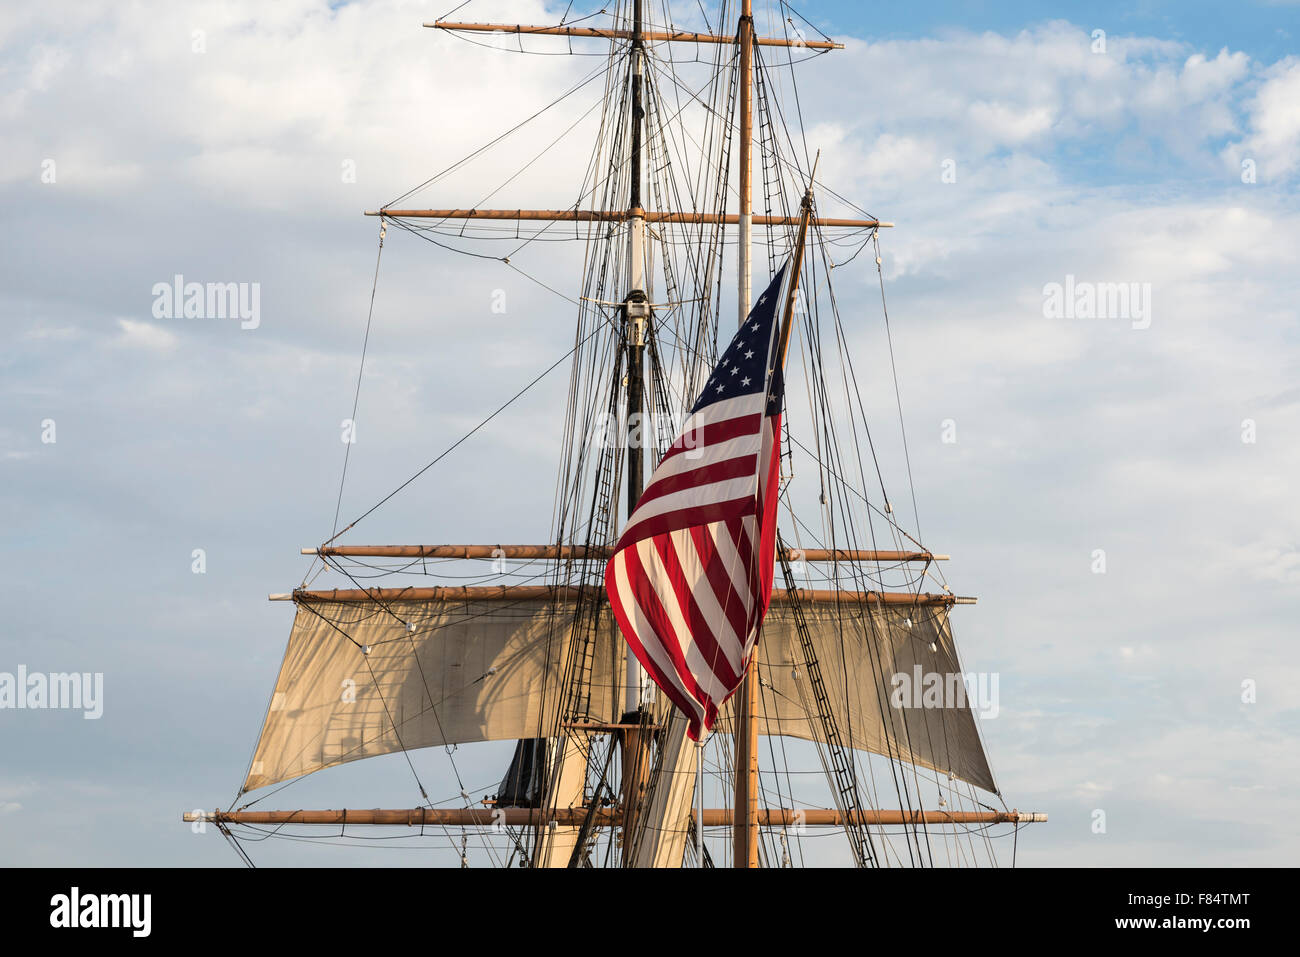 Large sized American Flag with boat mast and rigging. - Stock Image